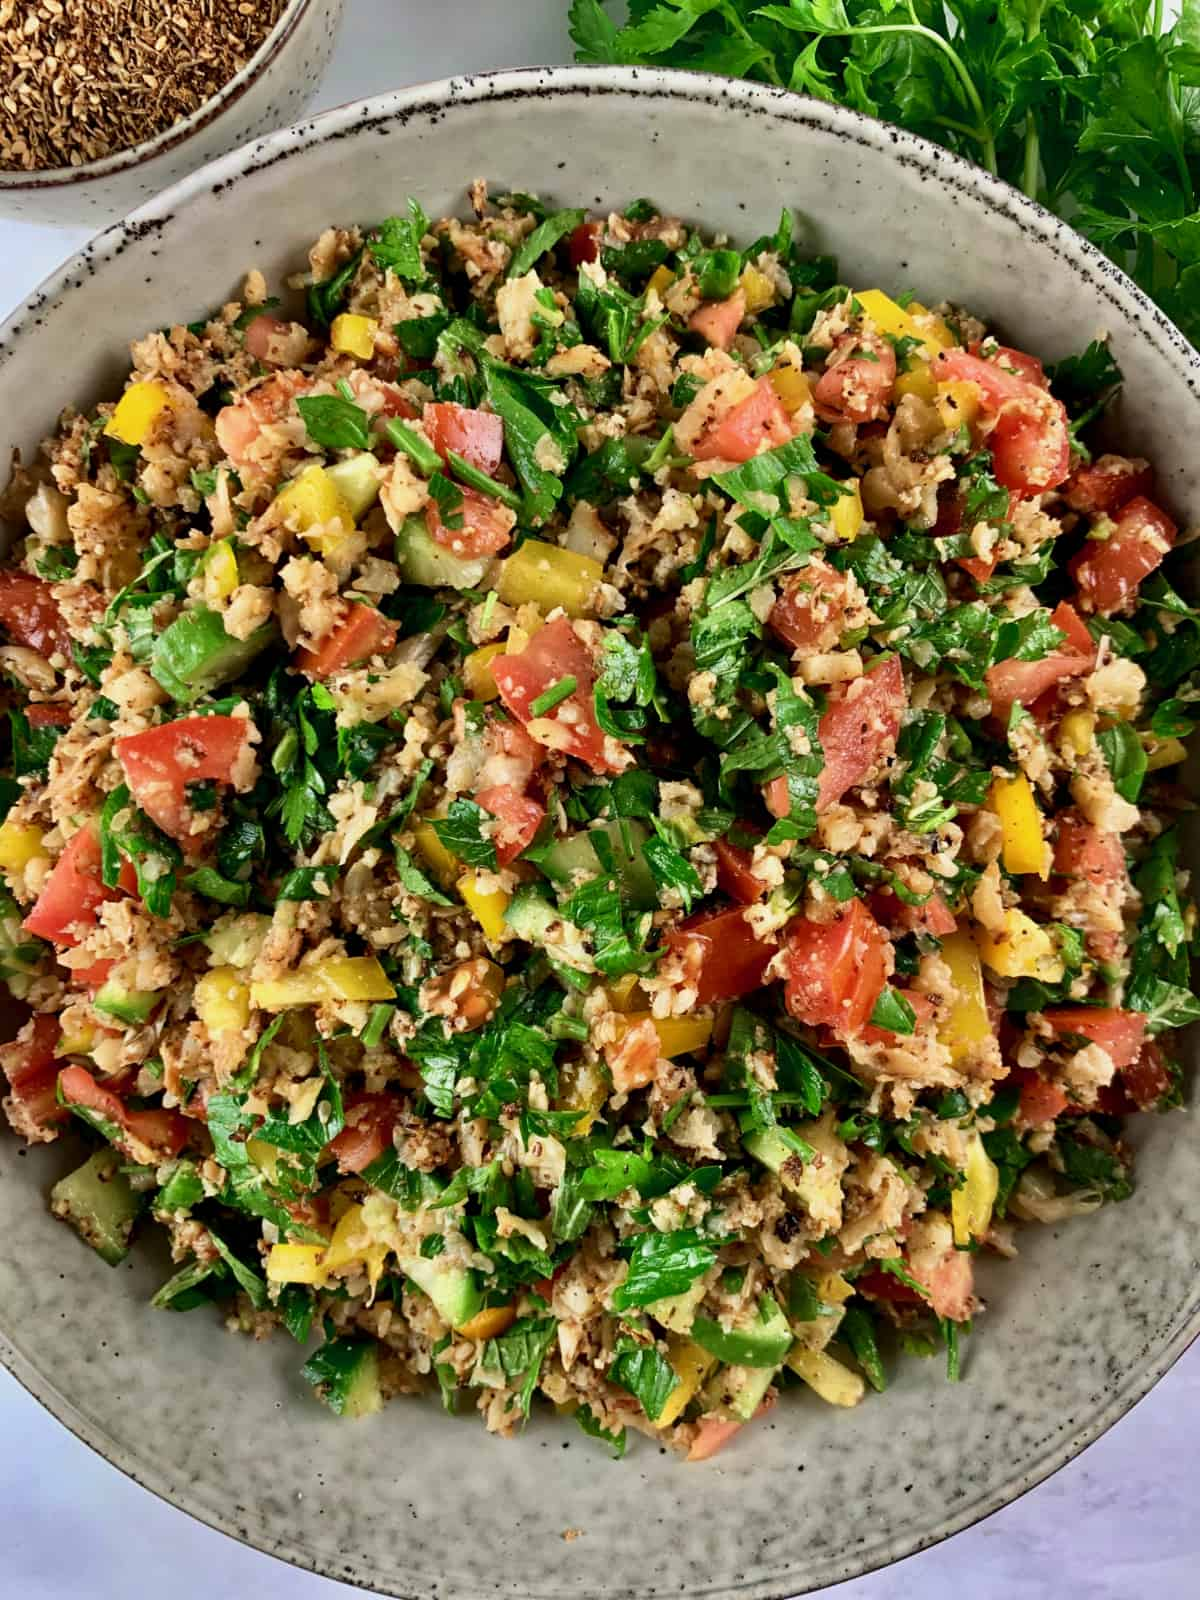 CAULIFLOWER TABBOULEH IN A BOWL WITH ZA'ATAR AND PARSLEY ON THE SIDE